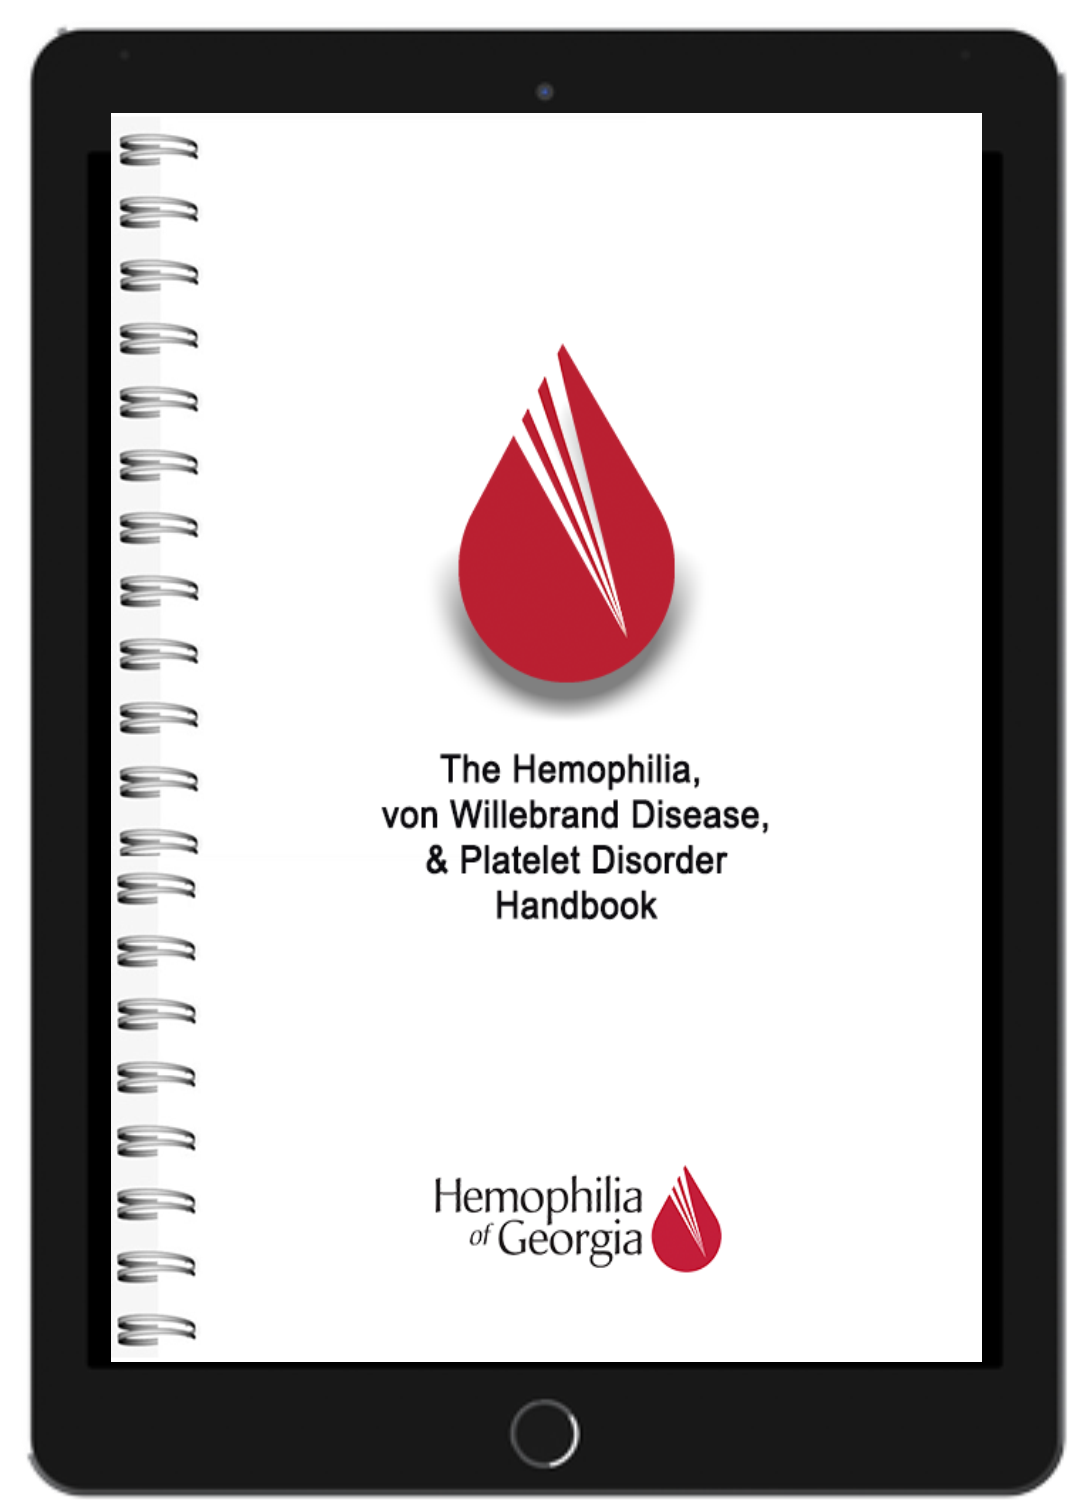 The Hemophilia, von Willebrand Disease, and Platelet Disorder Handbook Digital Representation